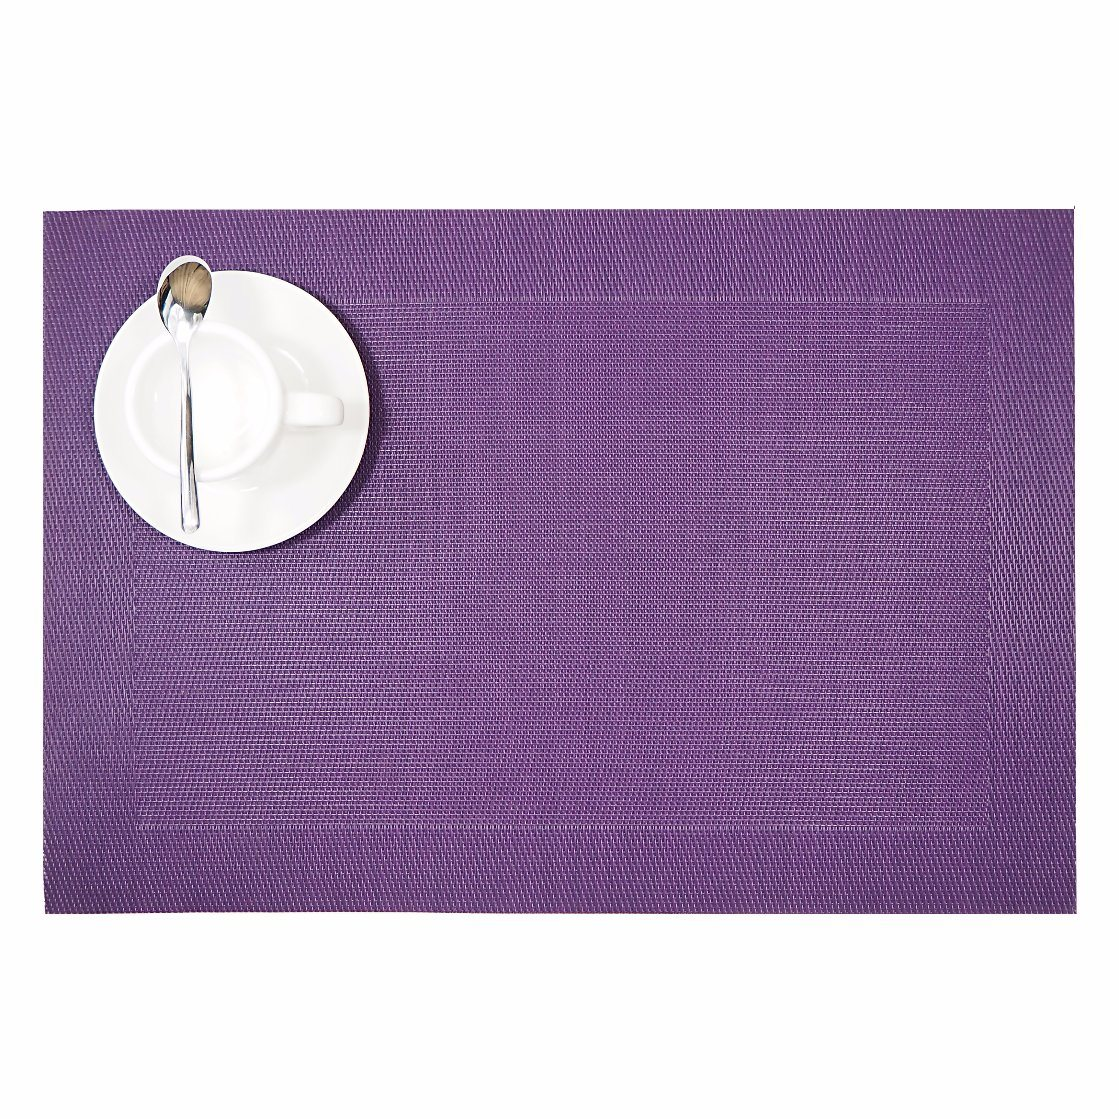 Classical Colorful Jacquard Weave Textile Placemat for Tabletop & Flooring